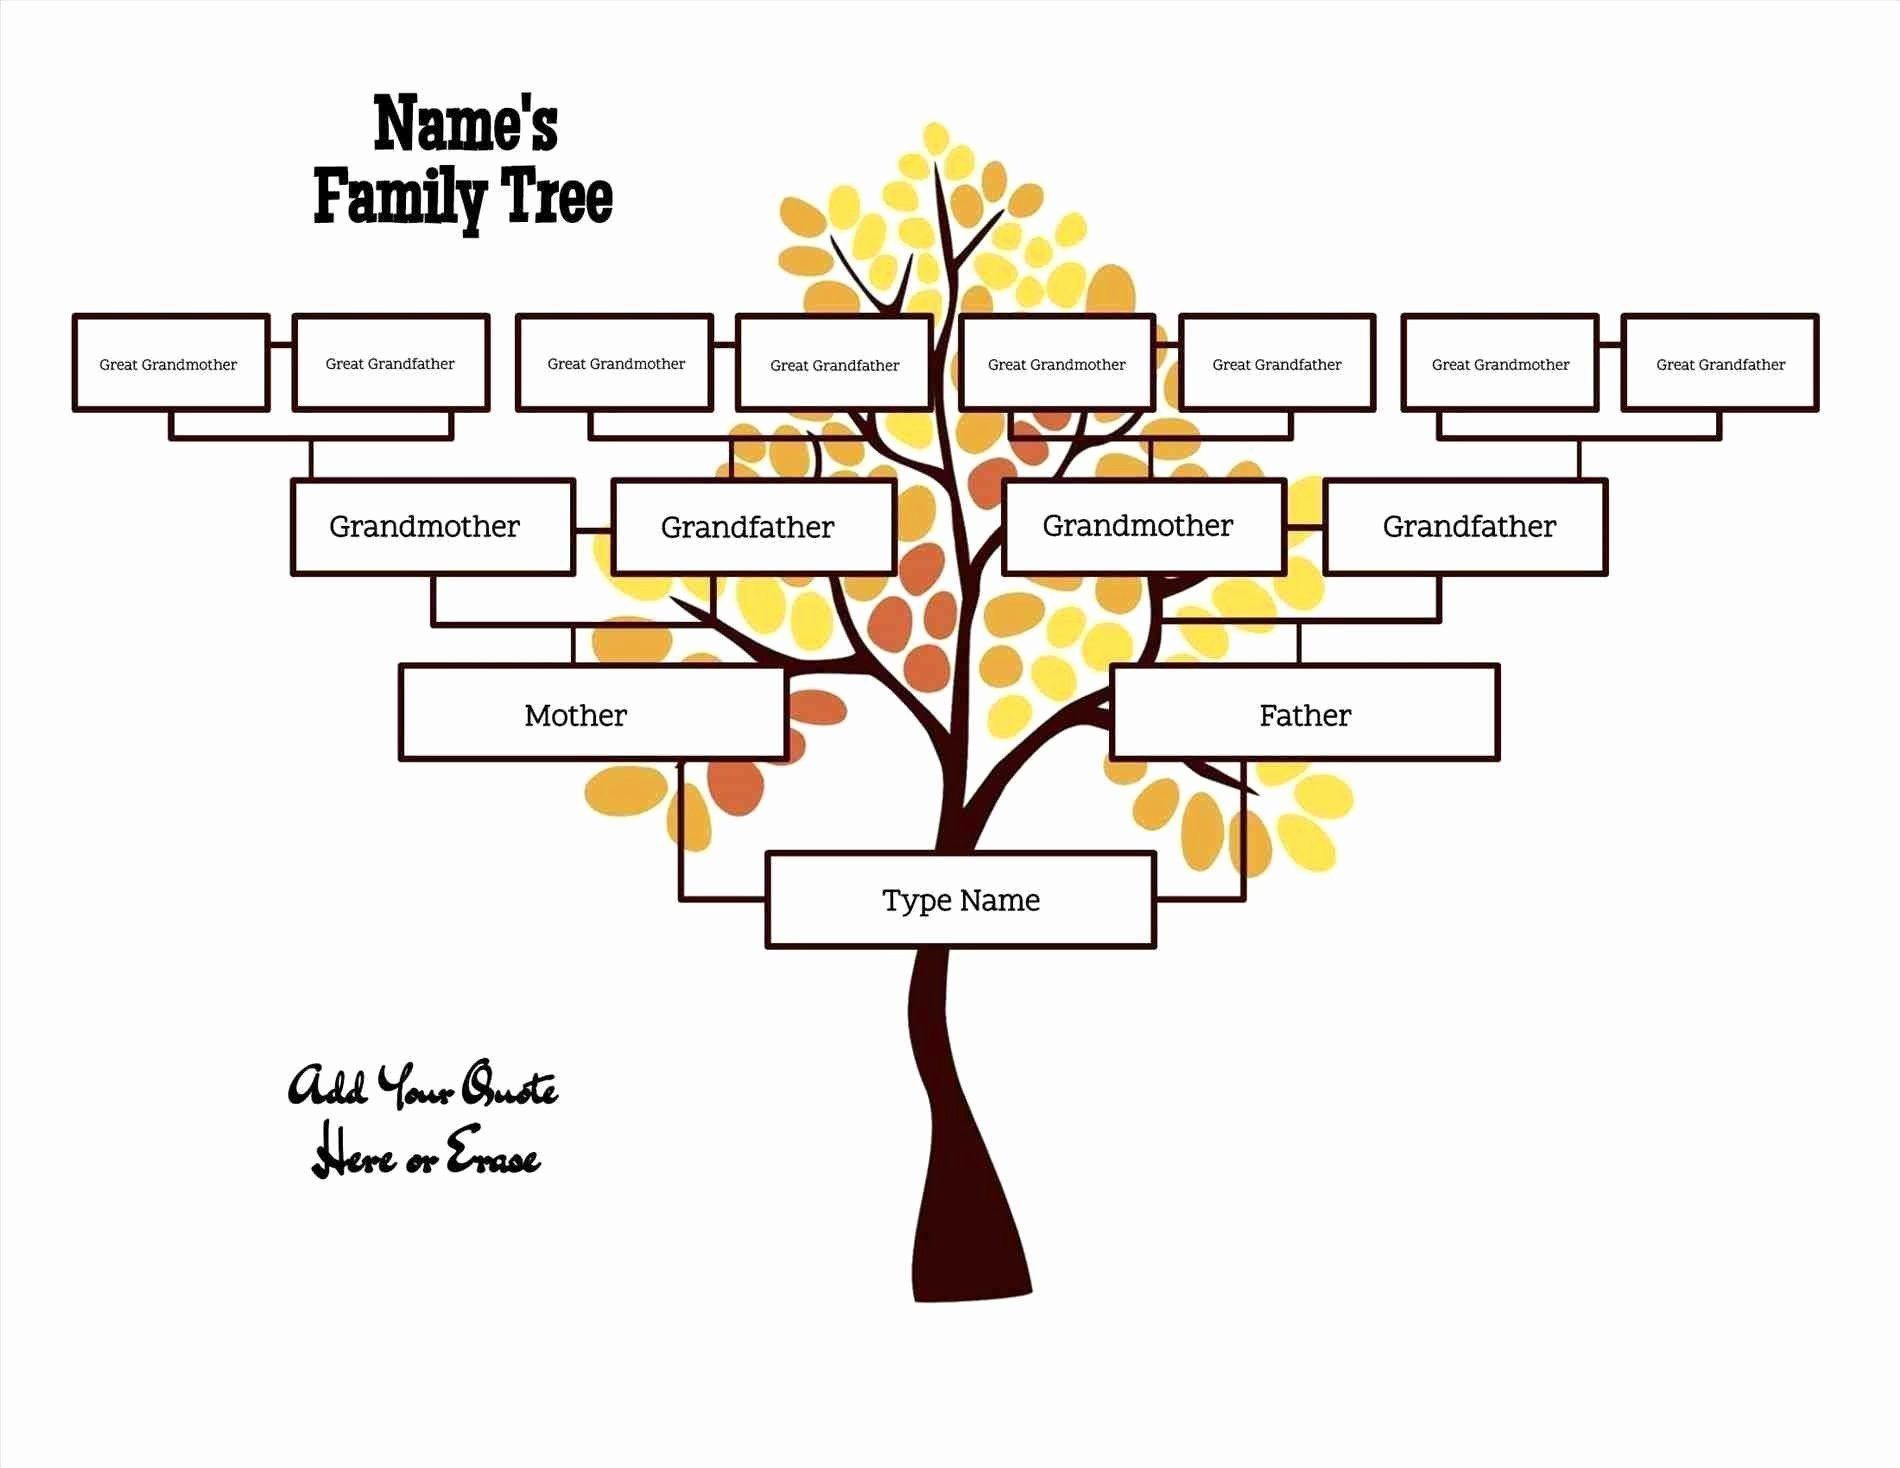 010 Wonderful Free Editable Family Tree Template For Mac Concept Full